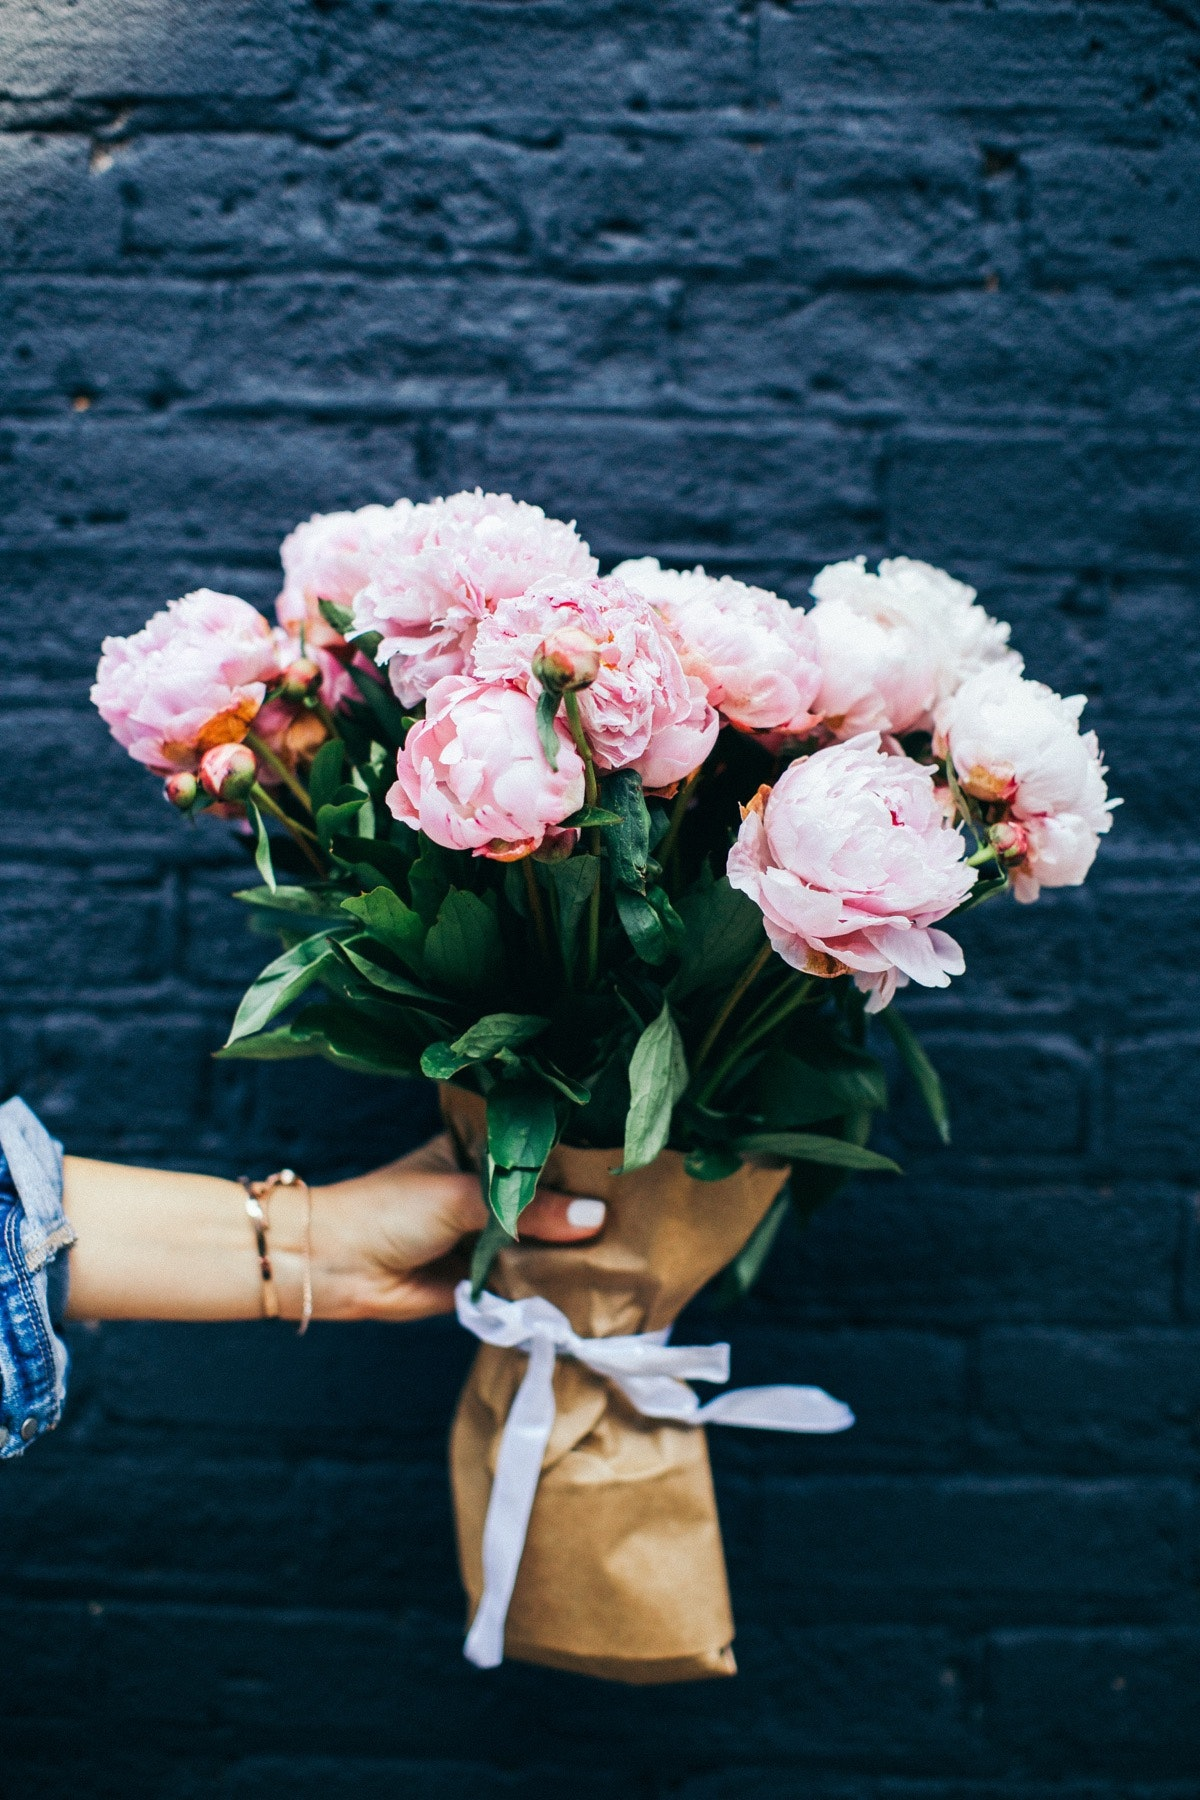 1000 Engaging Flower Bouquet Photos Pexels Free Stock Photos